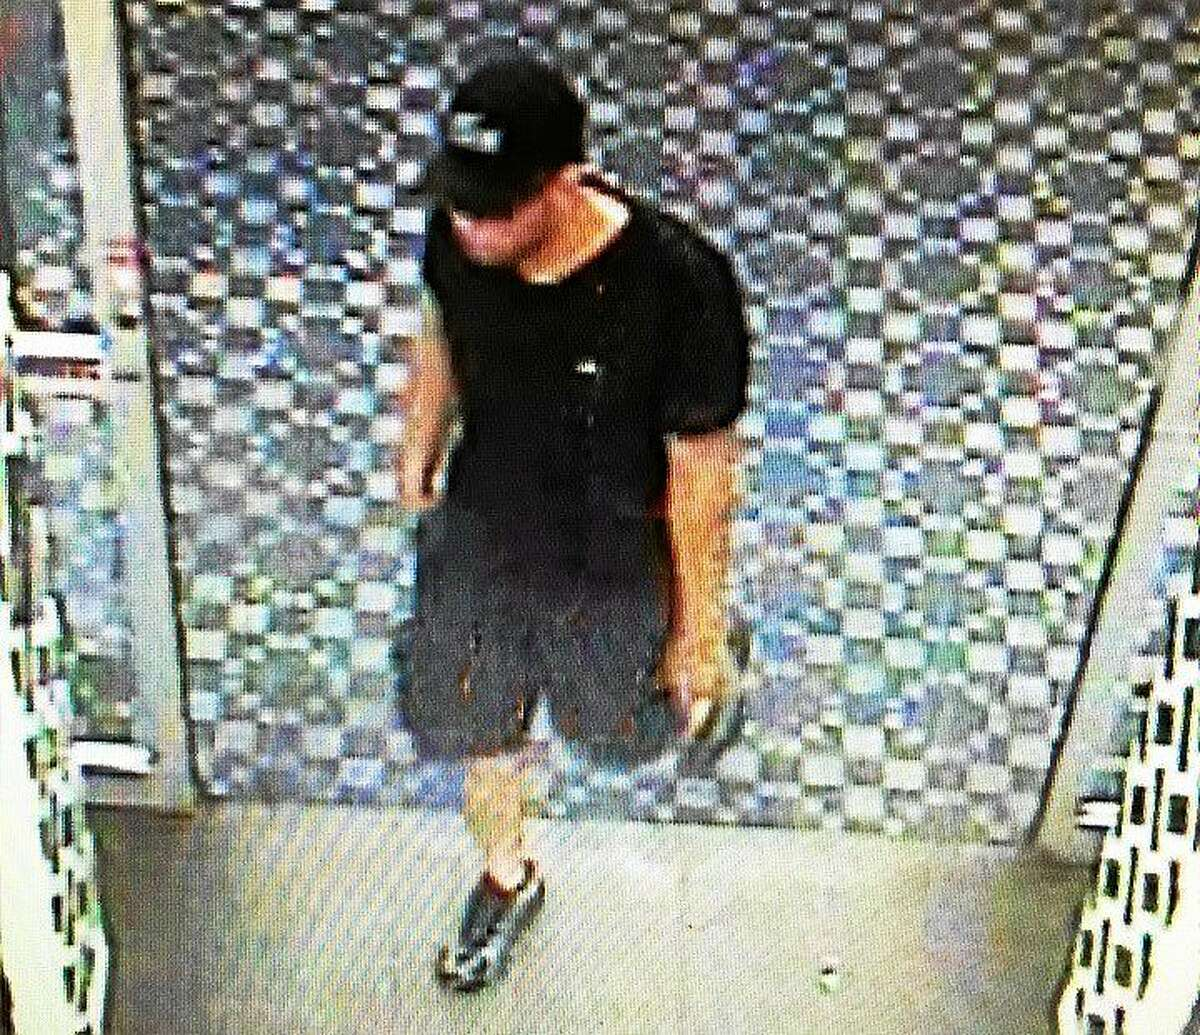 (Photo courtesy of the Clinton Police Department) Police in Clinton are looking for a man who used a stolen credit card to make more than $2,000 in purchases at stores in Clinton and Waterford. Police said the suspect's vehicle appears to be a white Suzuki Kizashi sedan.